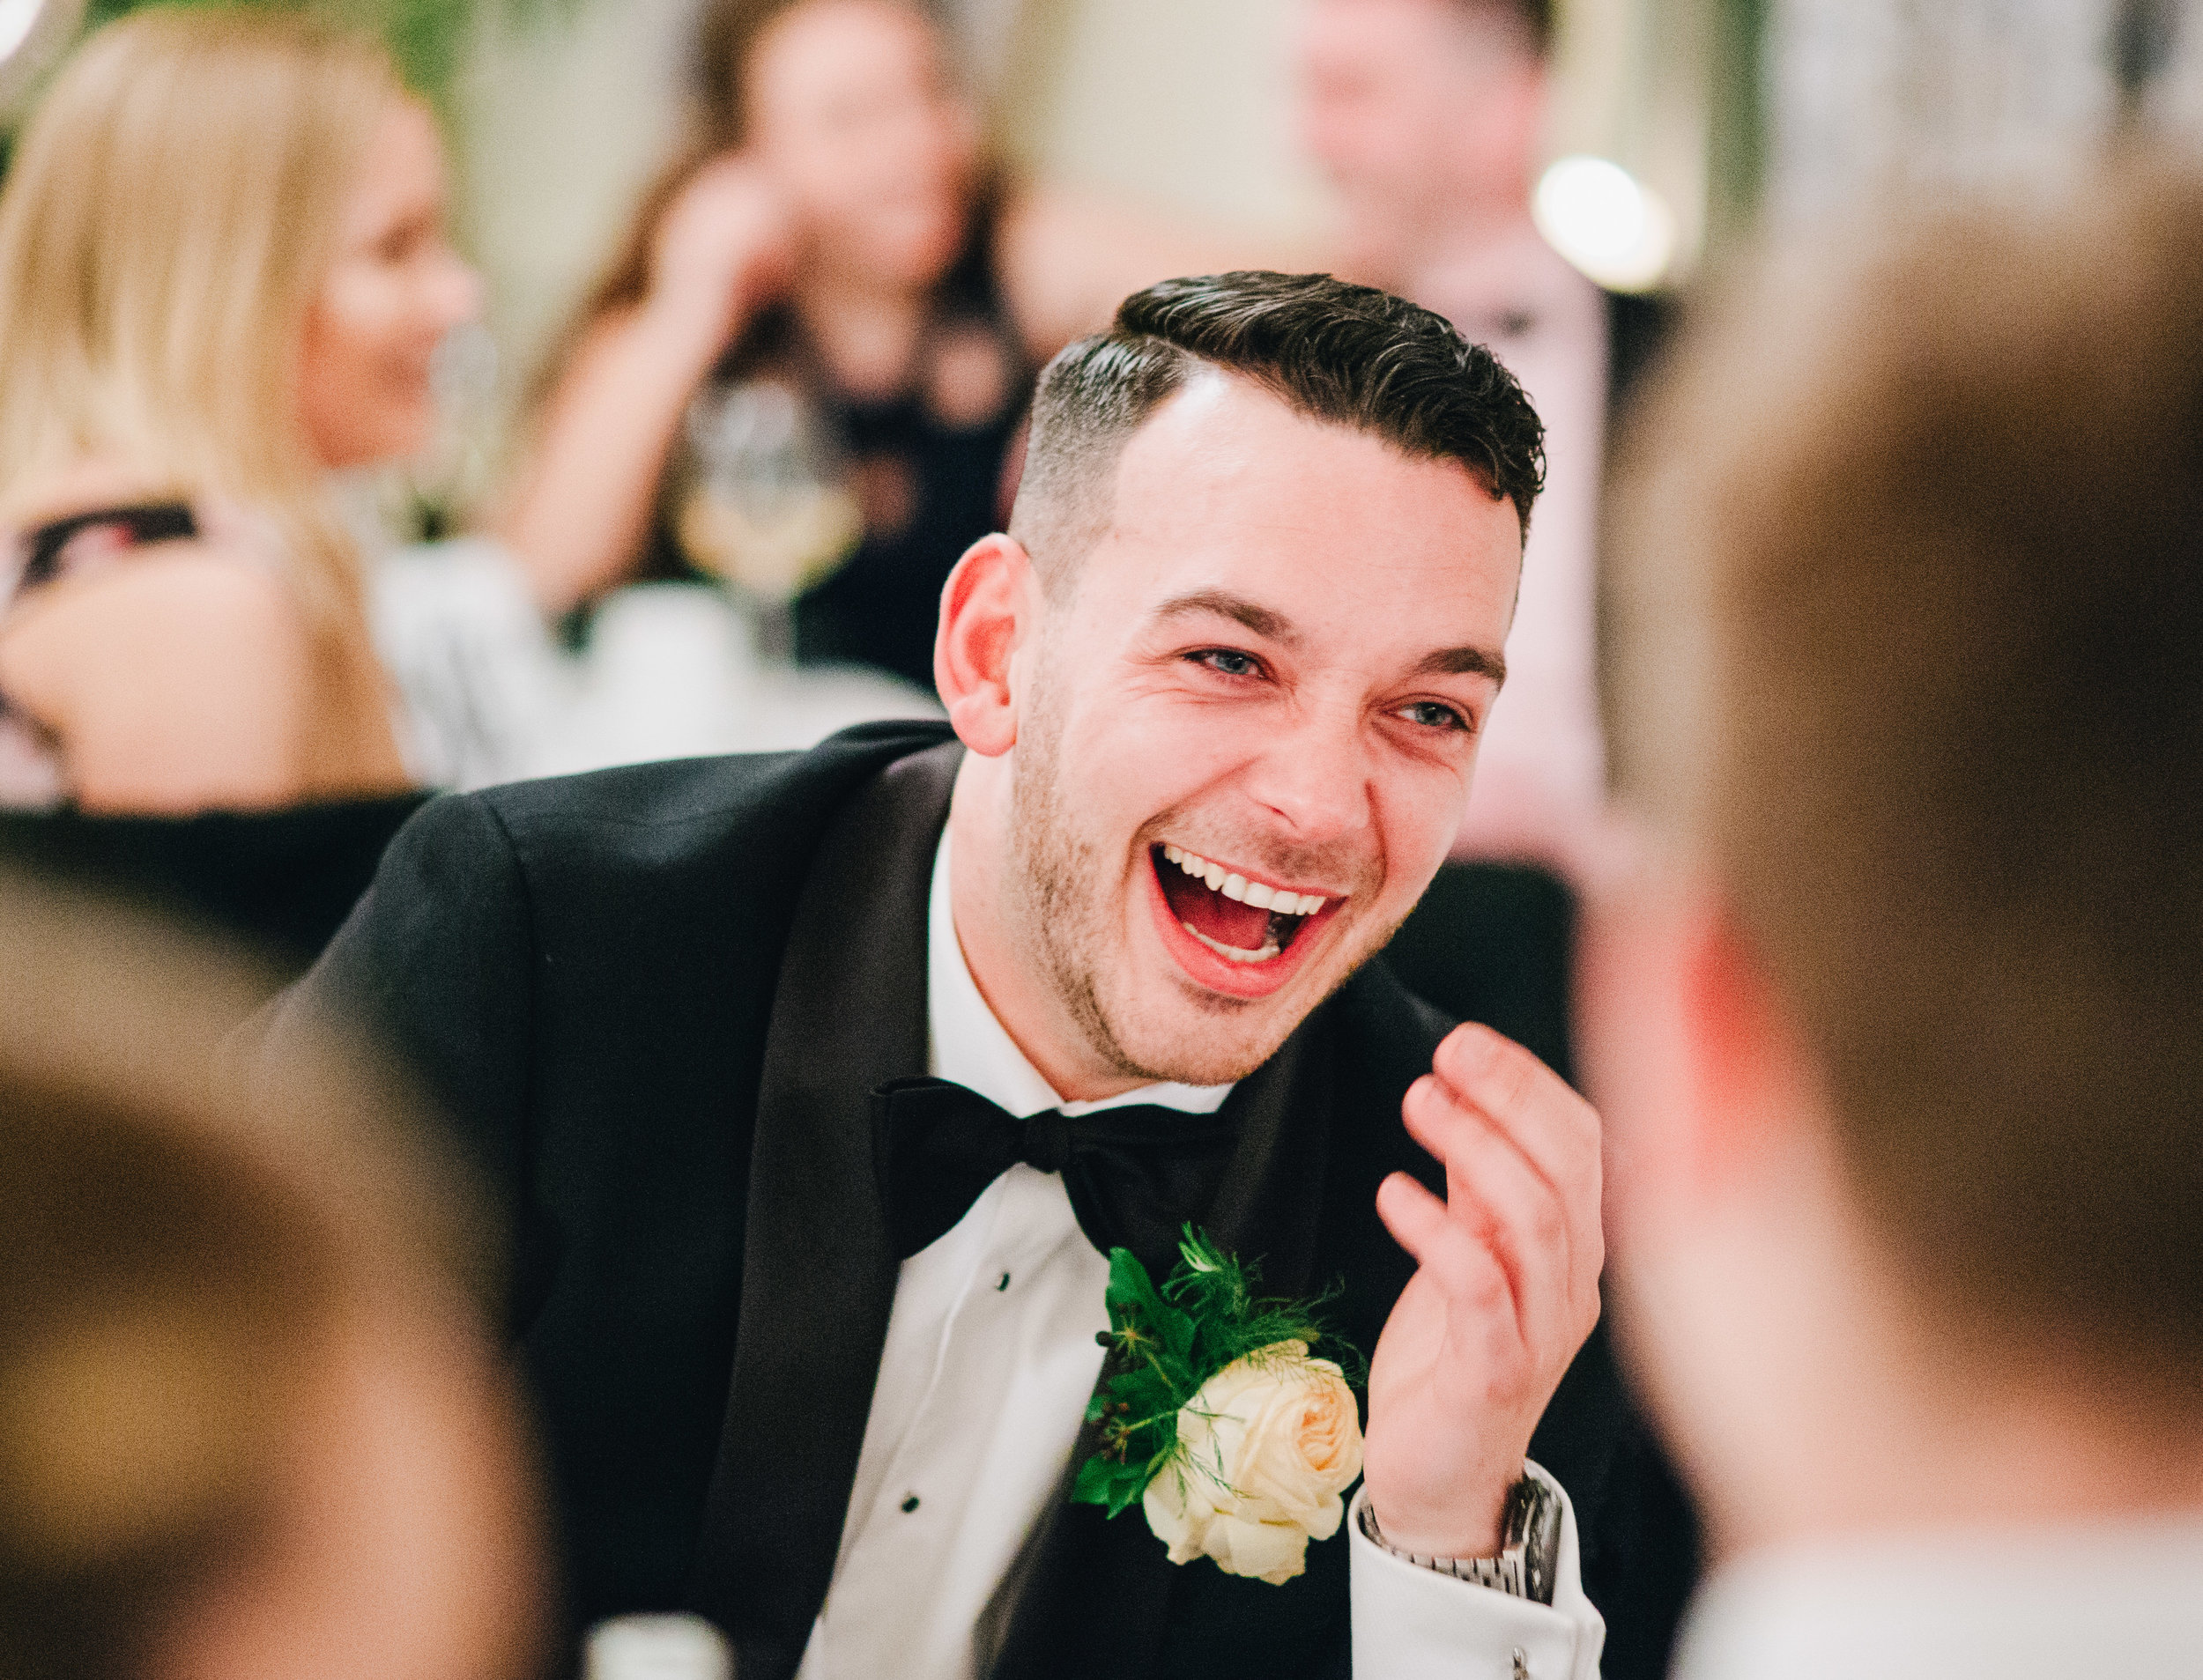 Guests laugh during speeches - natural wedding photography